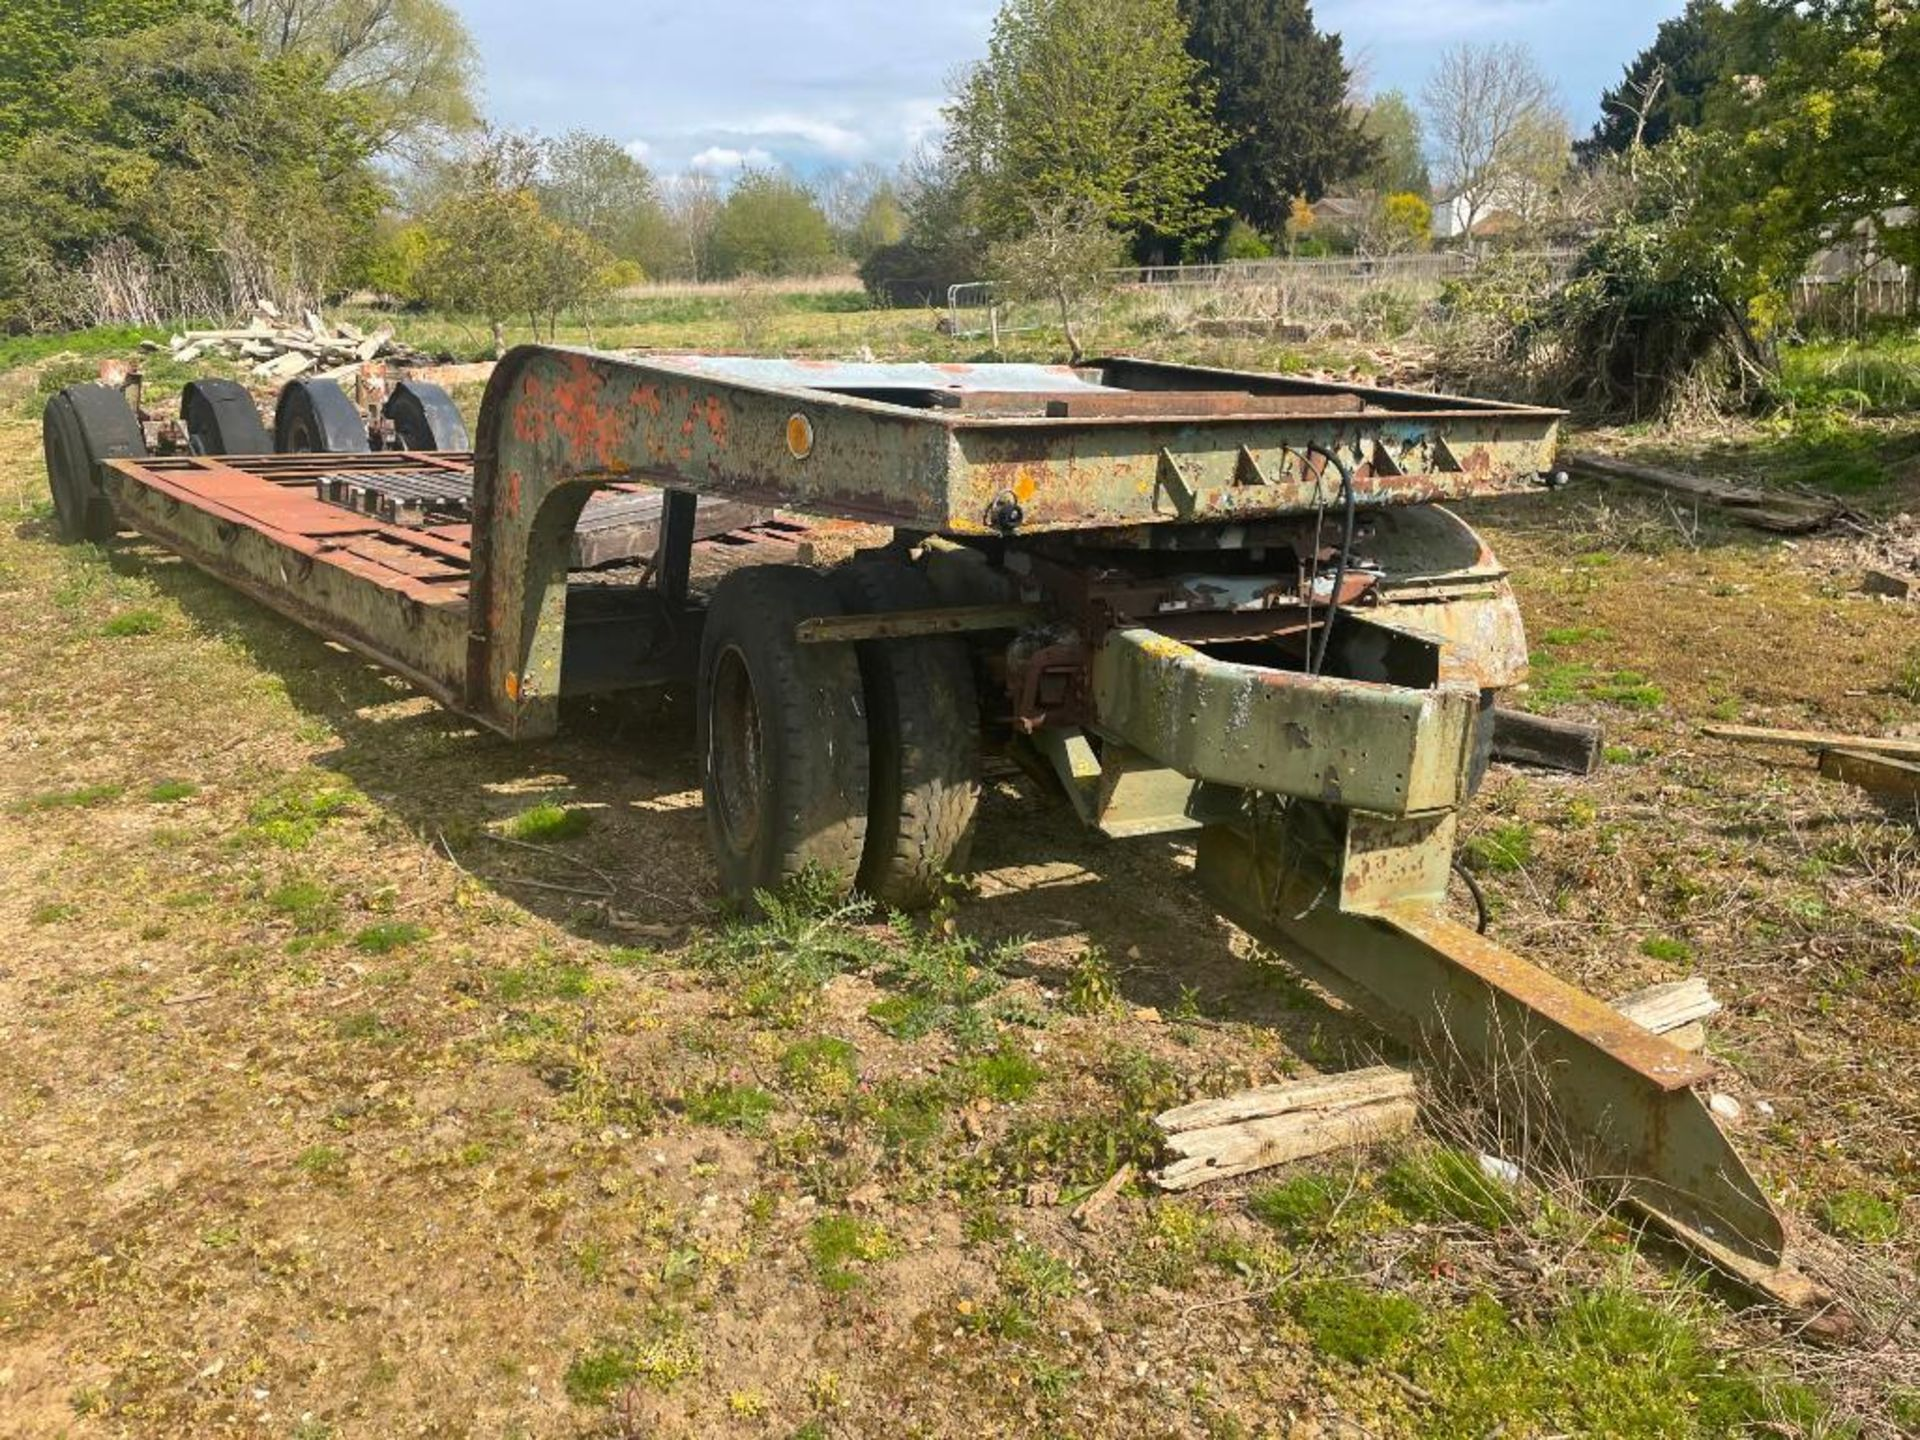 4 wheels swan-neck 6m low loader trailer with front dolly, hydraulic lowering. PLEASE NOTE: This ite